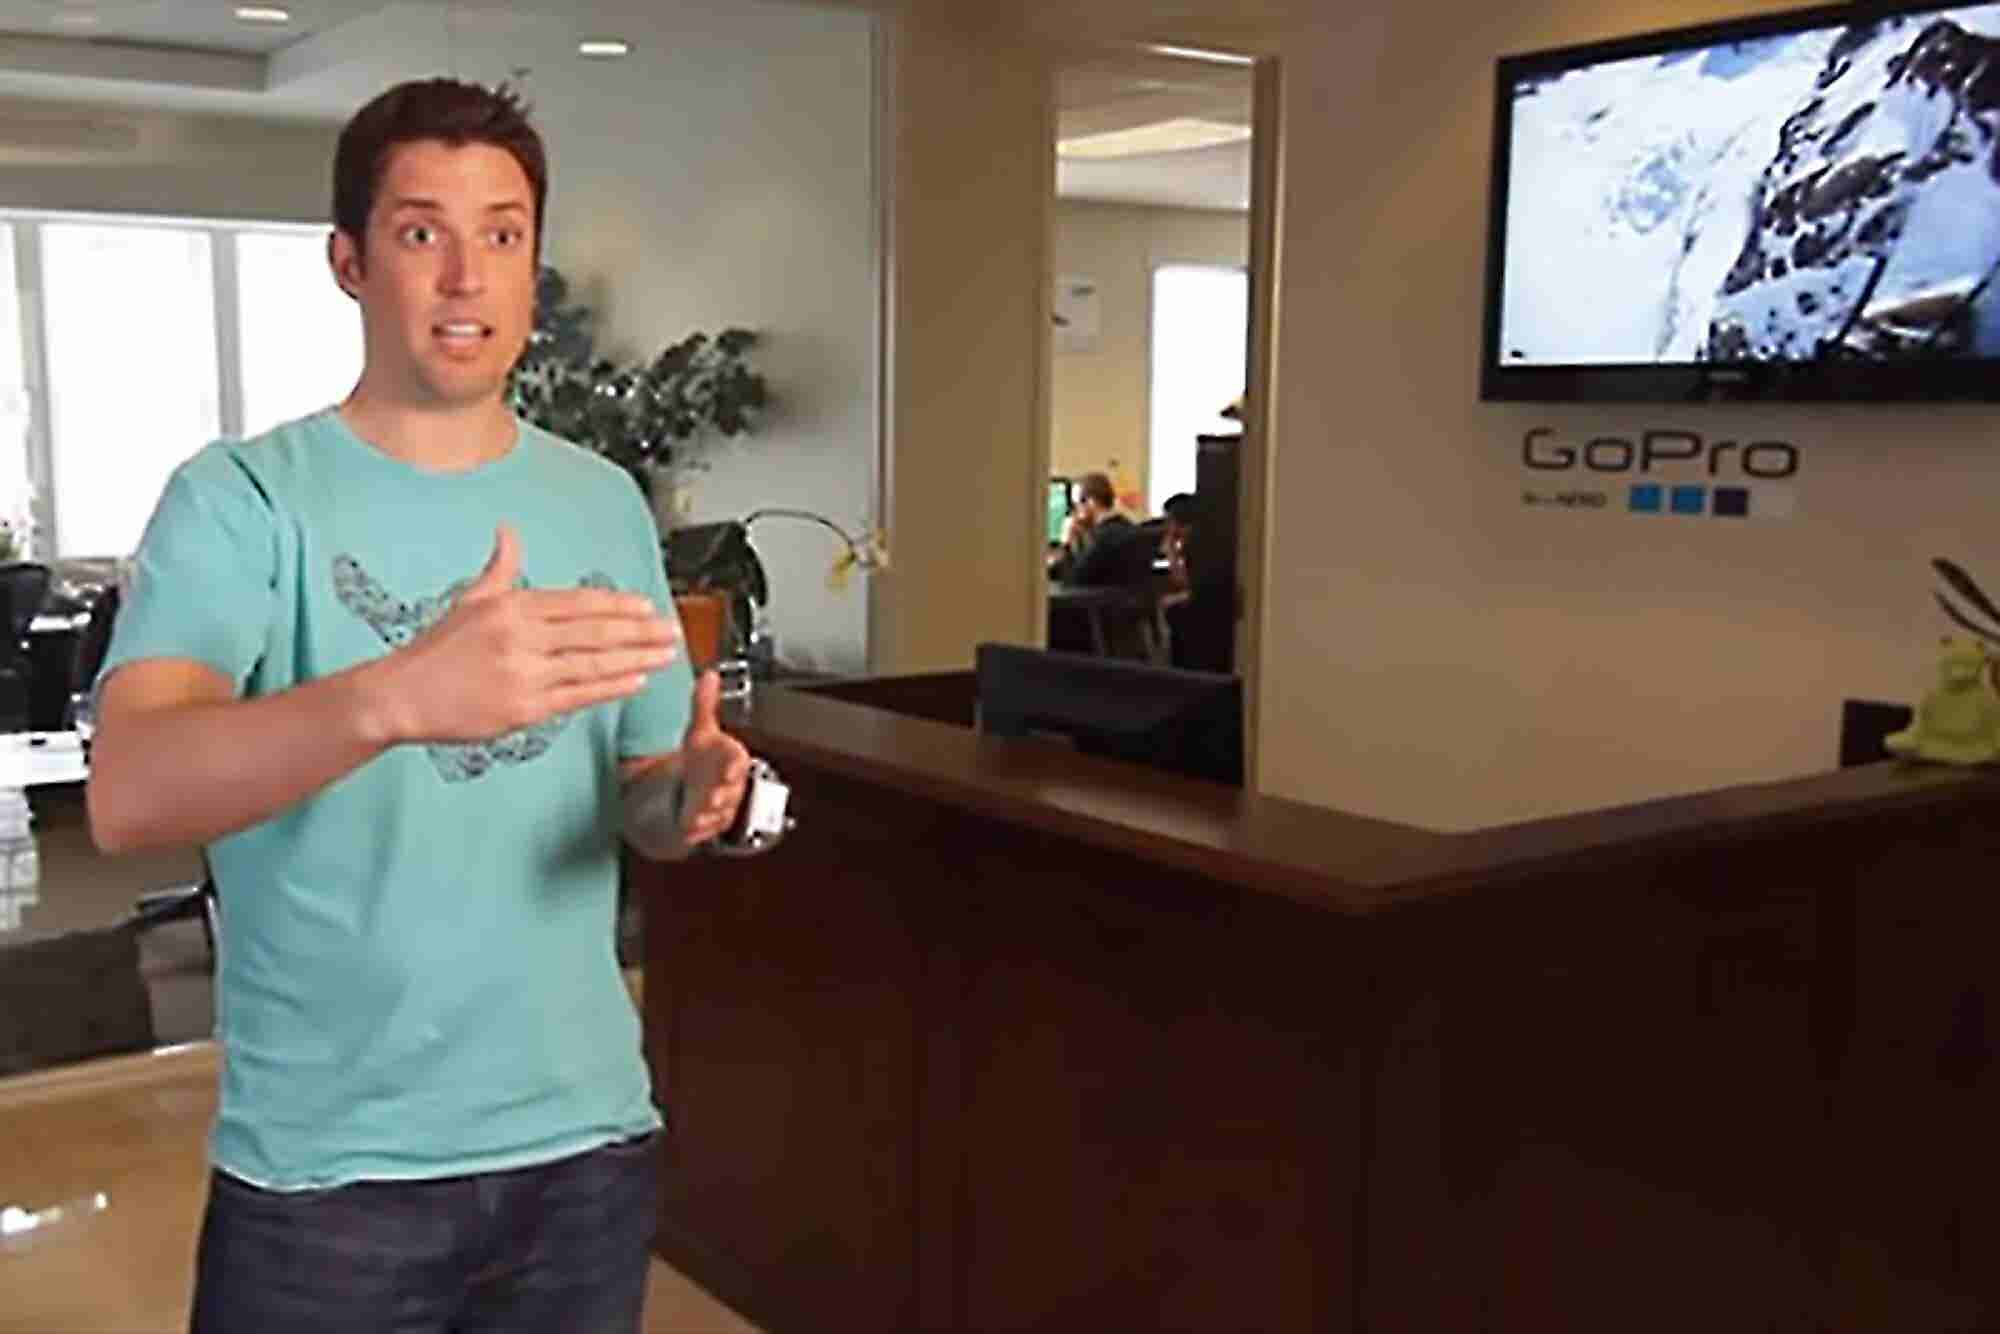 GoPro Founder Remembers His $3 Billion 'Ah-Hah Moment'